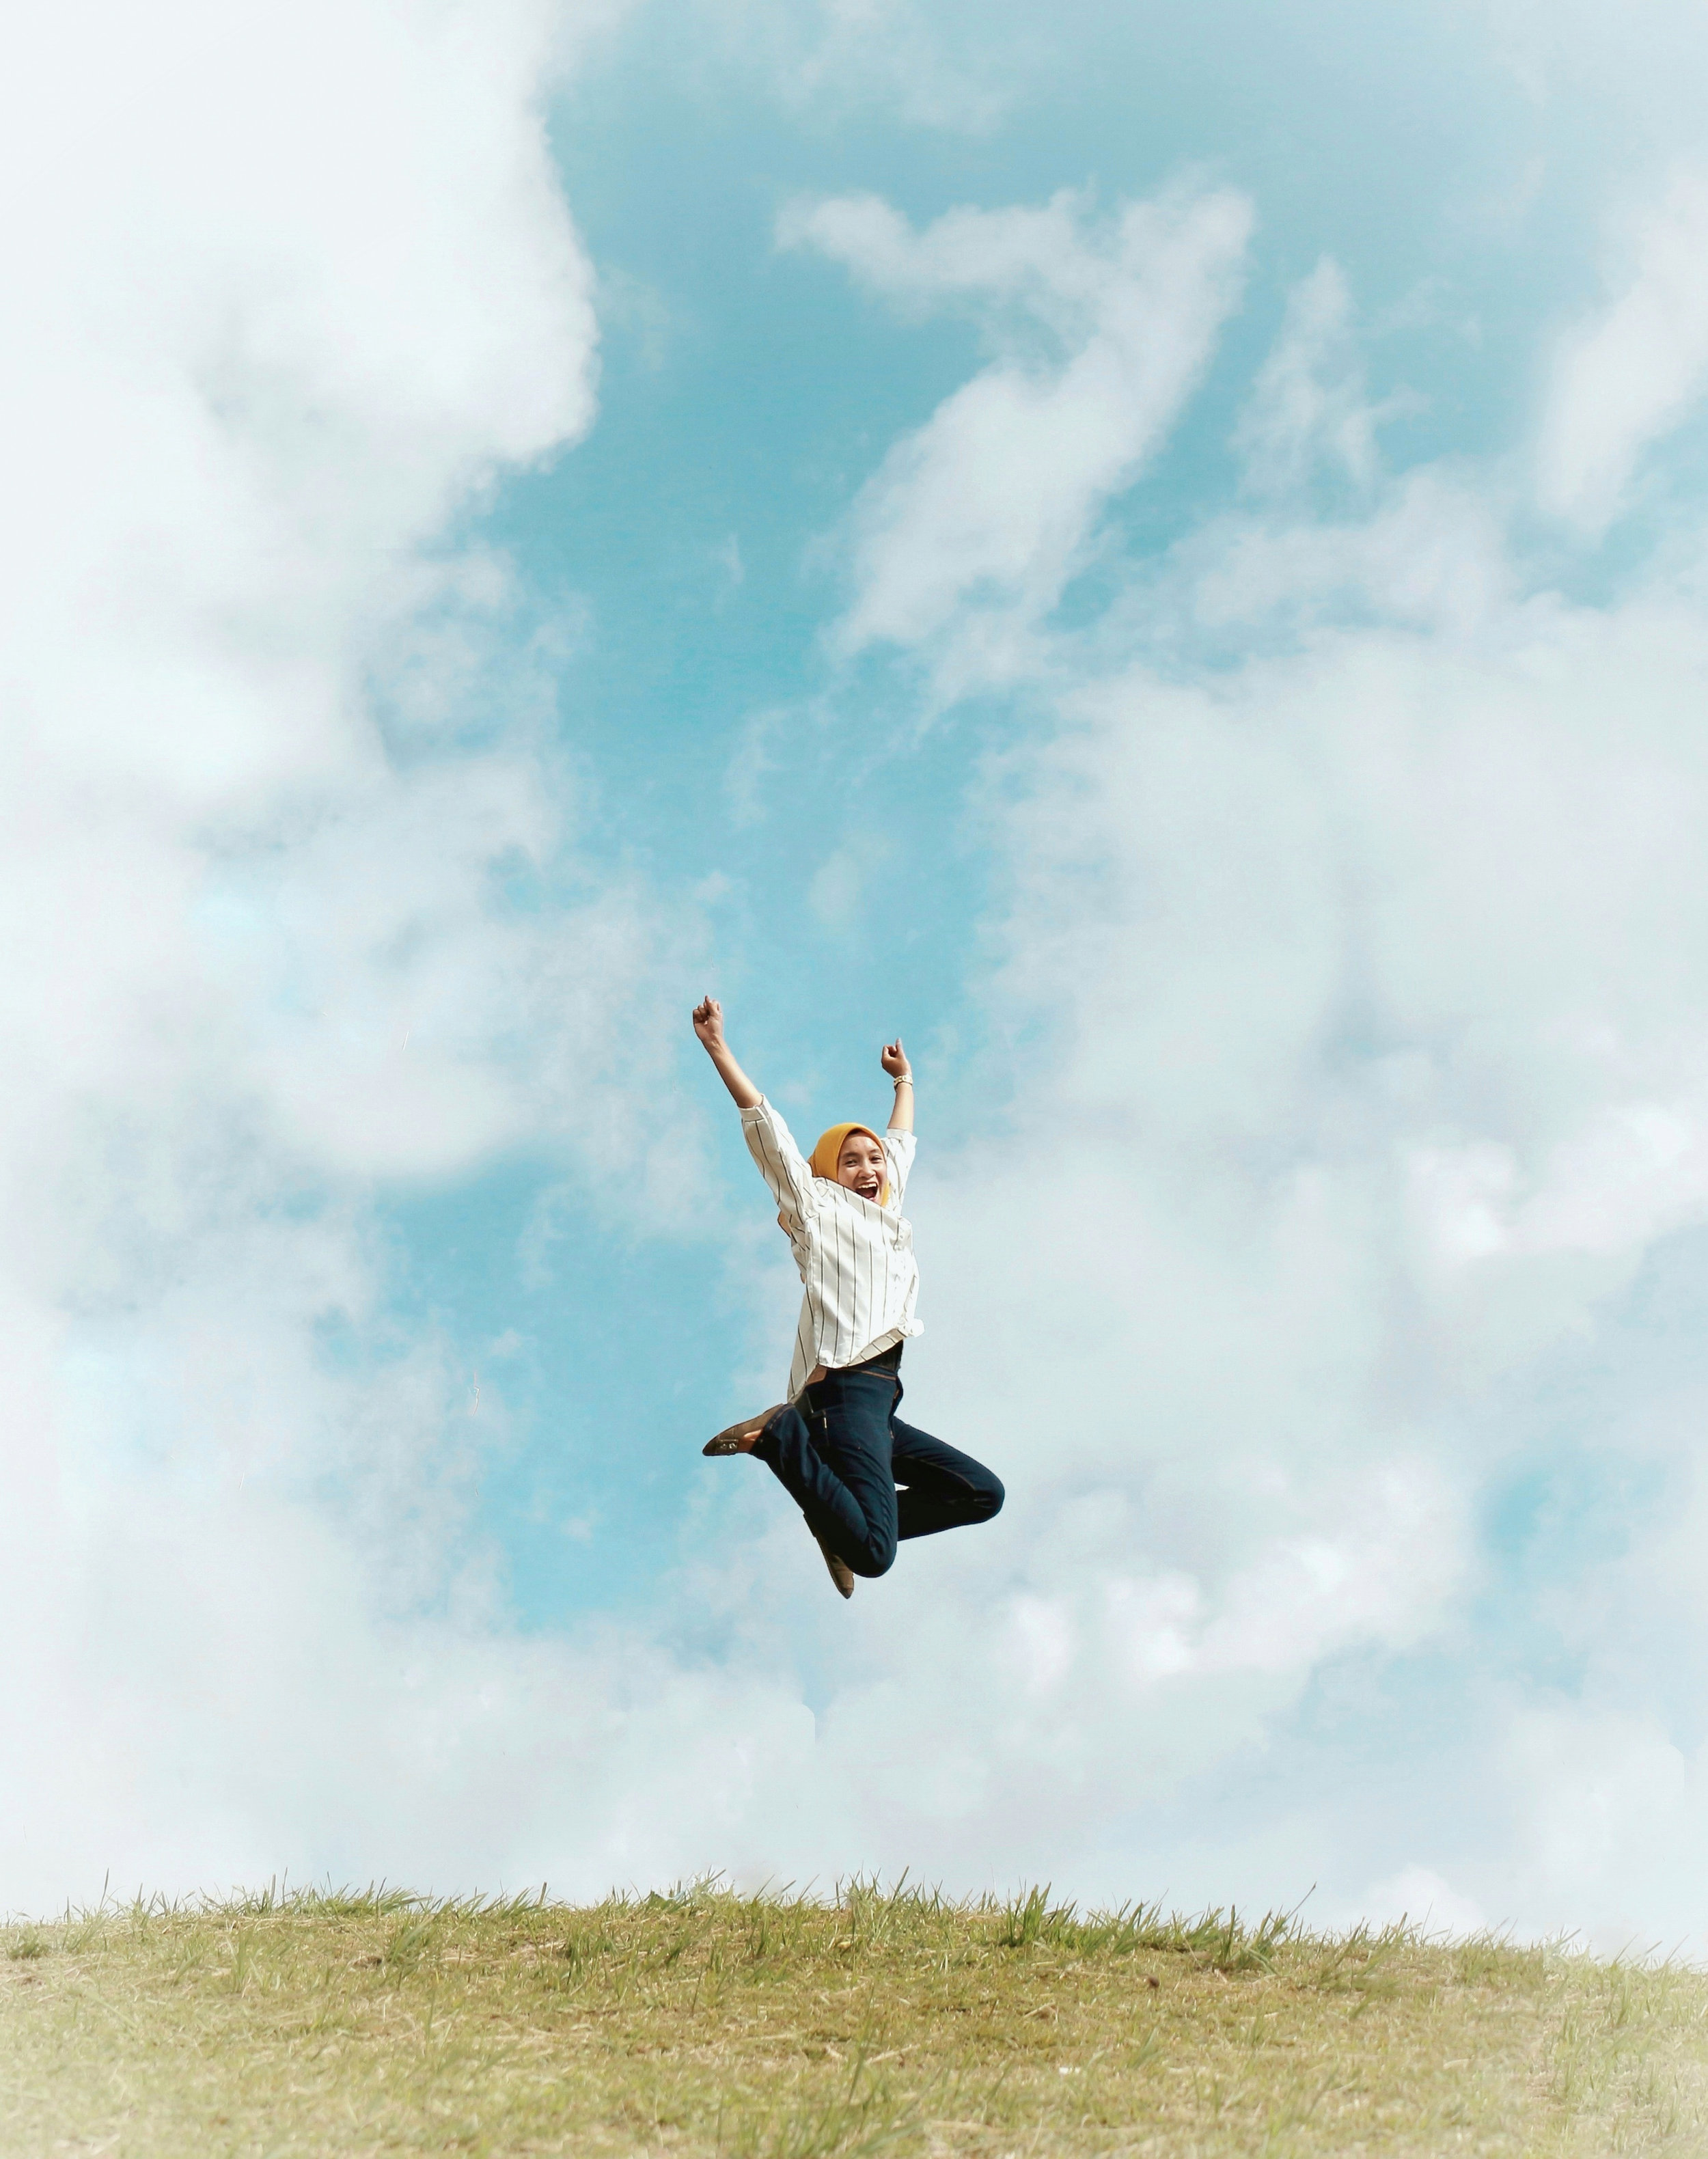 Canva - Person Jumping On Air With Clouds Background.jpg